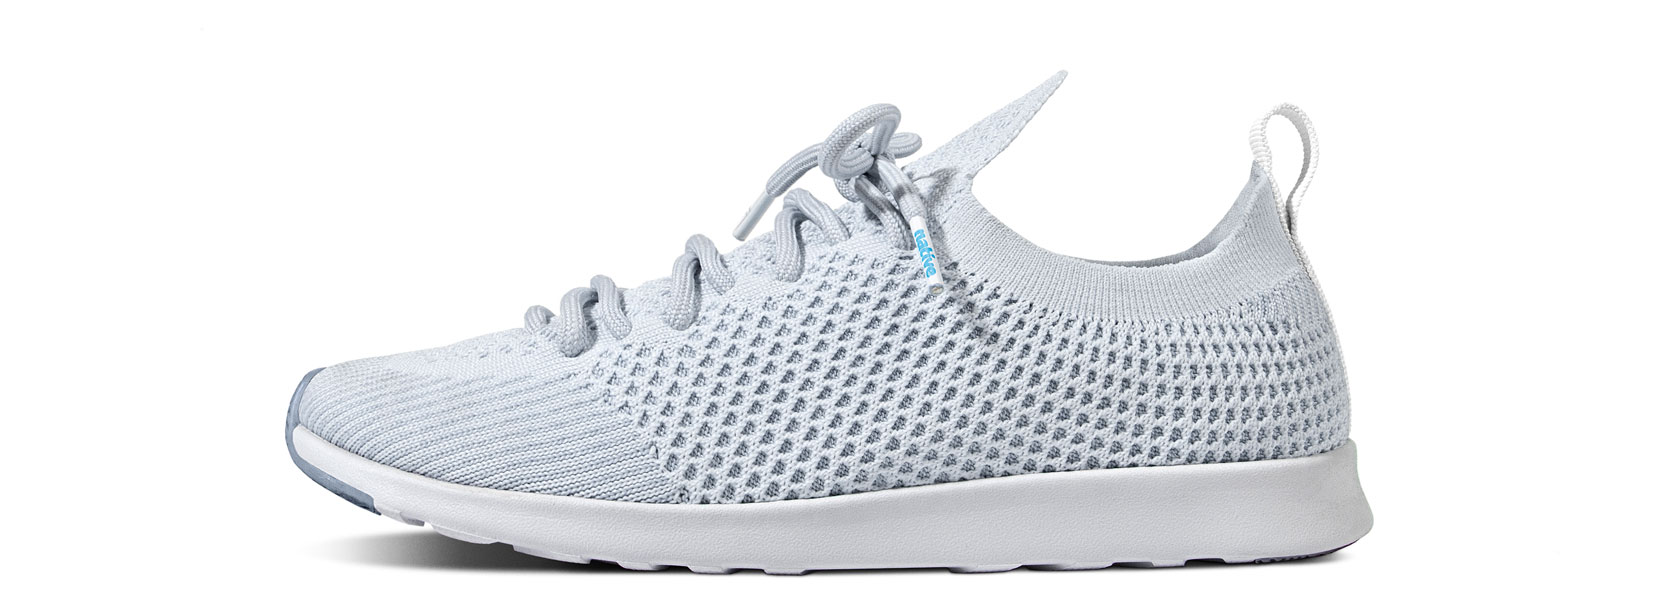 These Lightweight Knit Sneakers Are Even More Comfortable